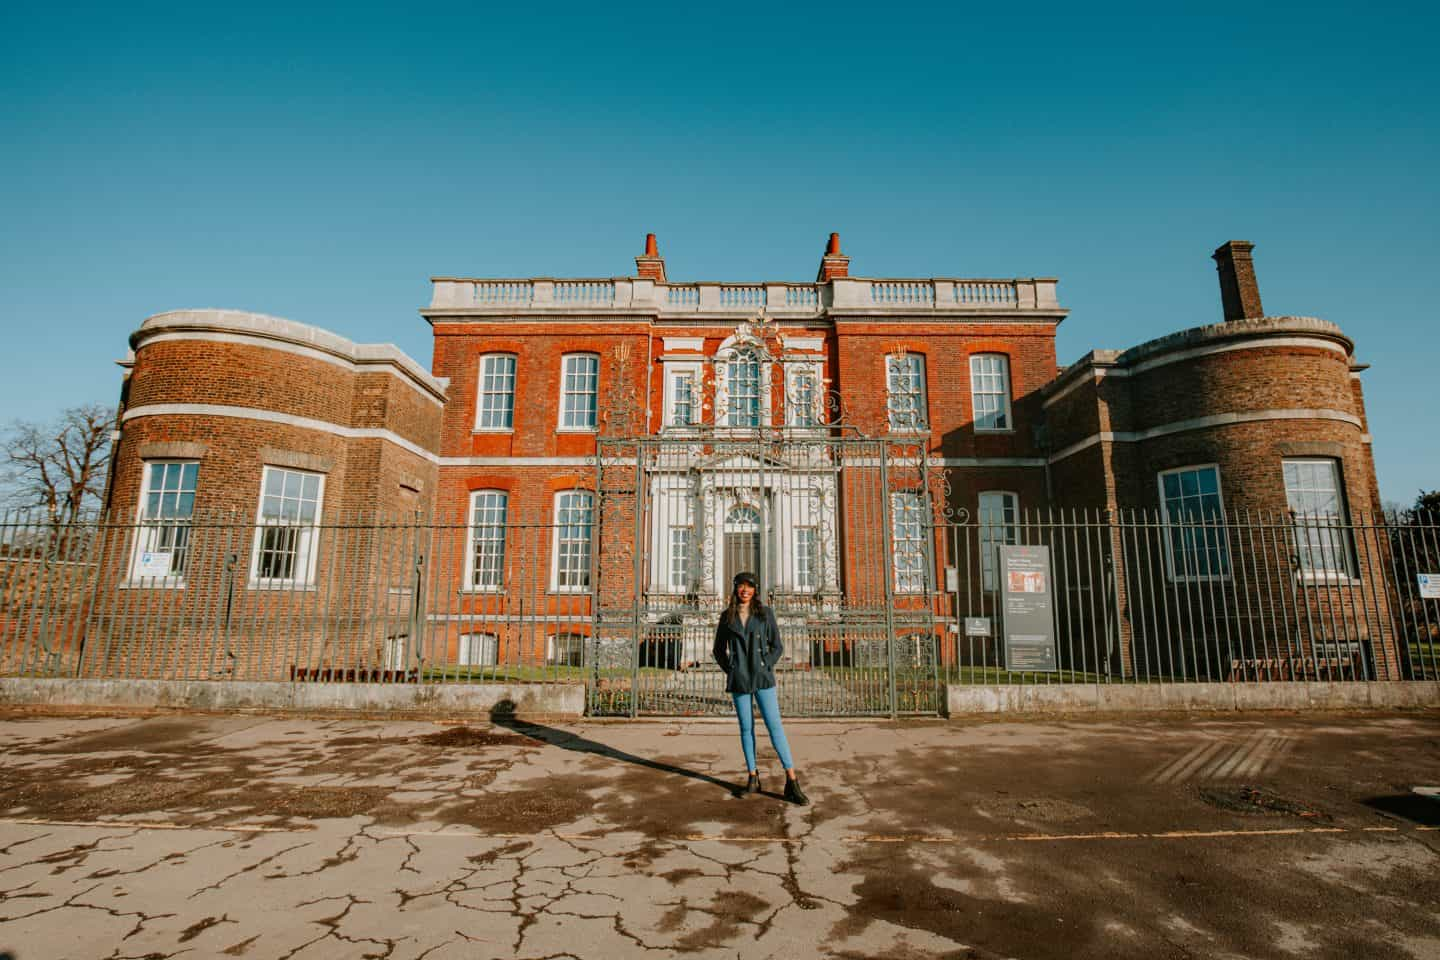 Candace-Abroad-at-Rangers -House -from -Bridgerton Film